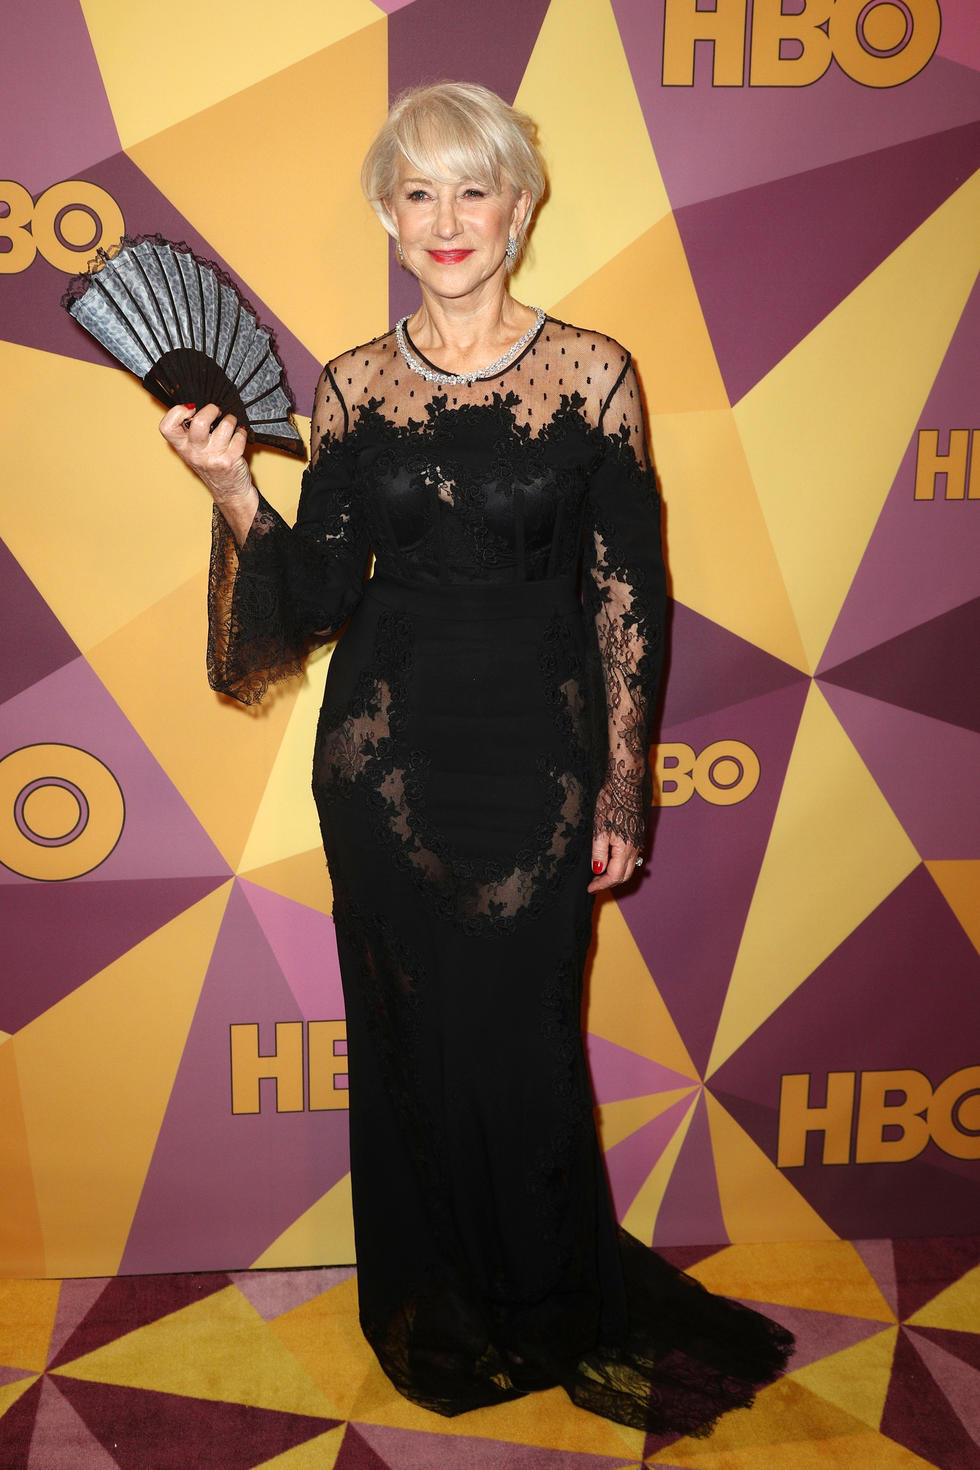 'The Leisure Seeker' star Helen Mirren arrived in a lace-paneled gown by Zuhair Murad